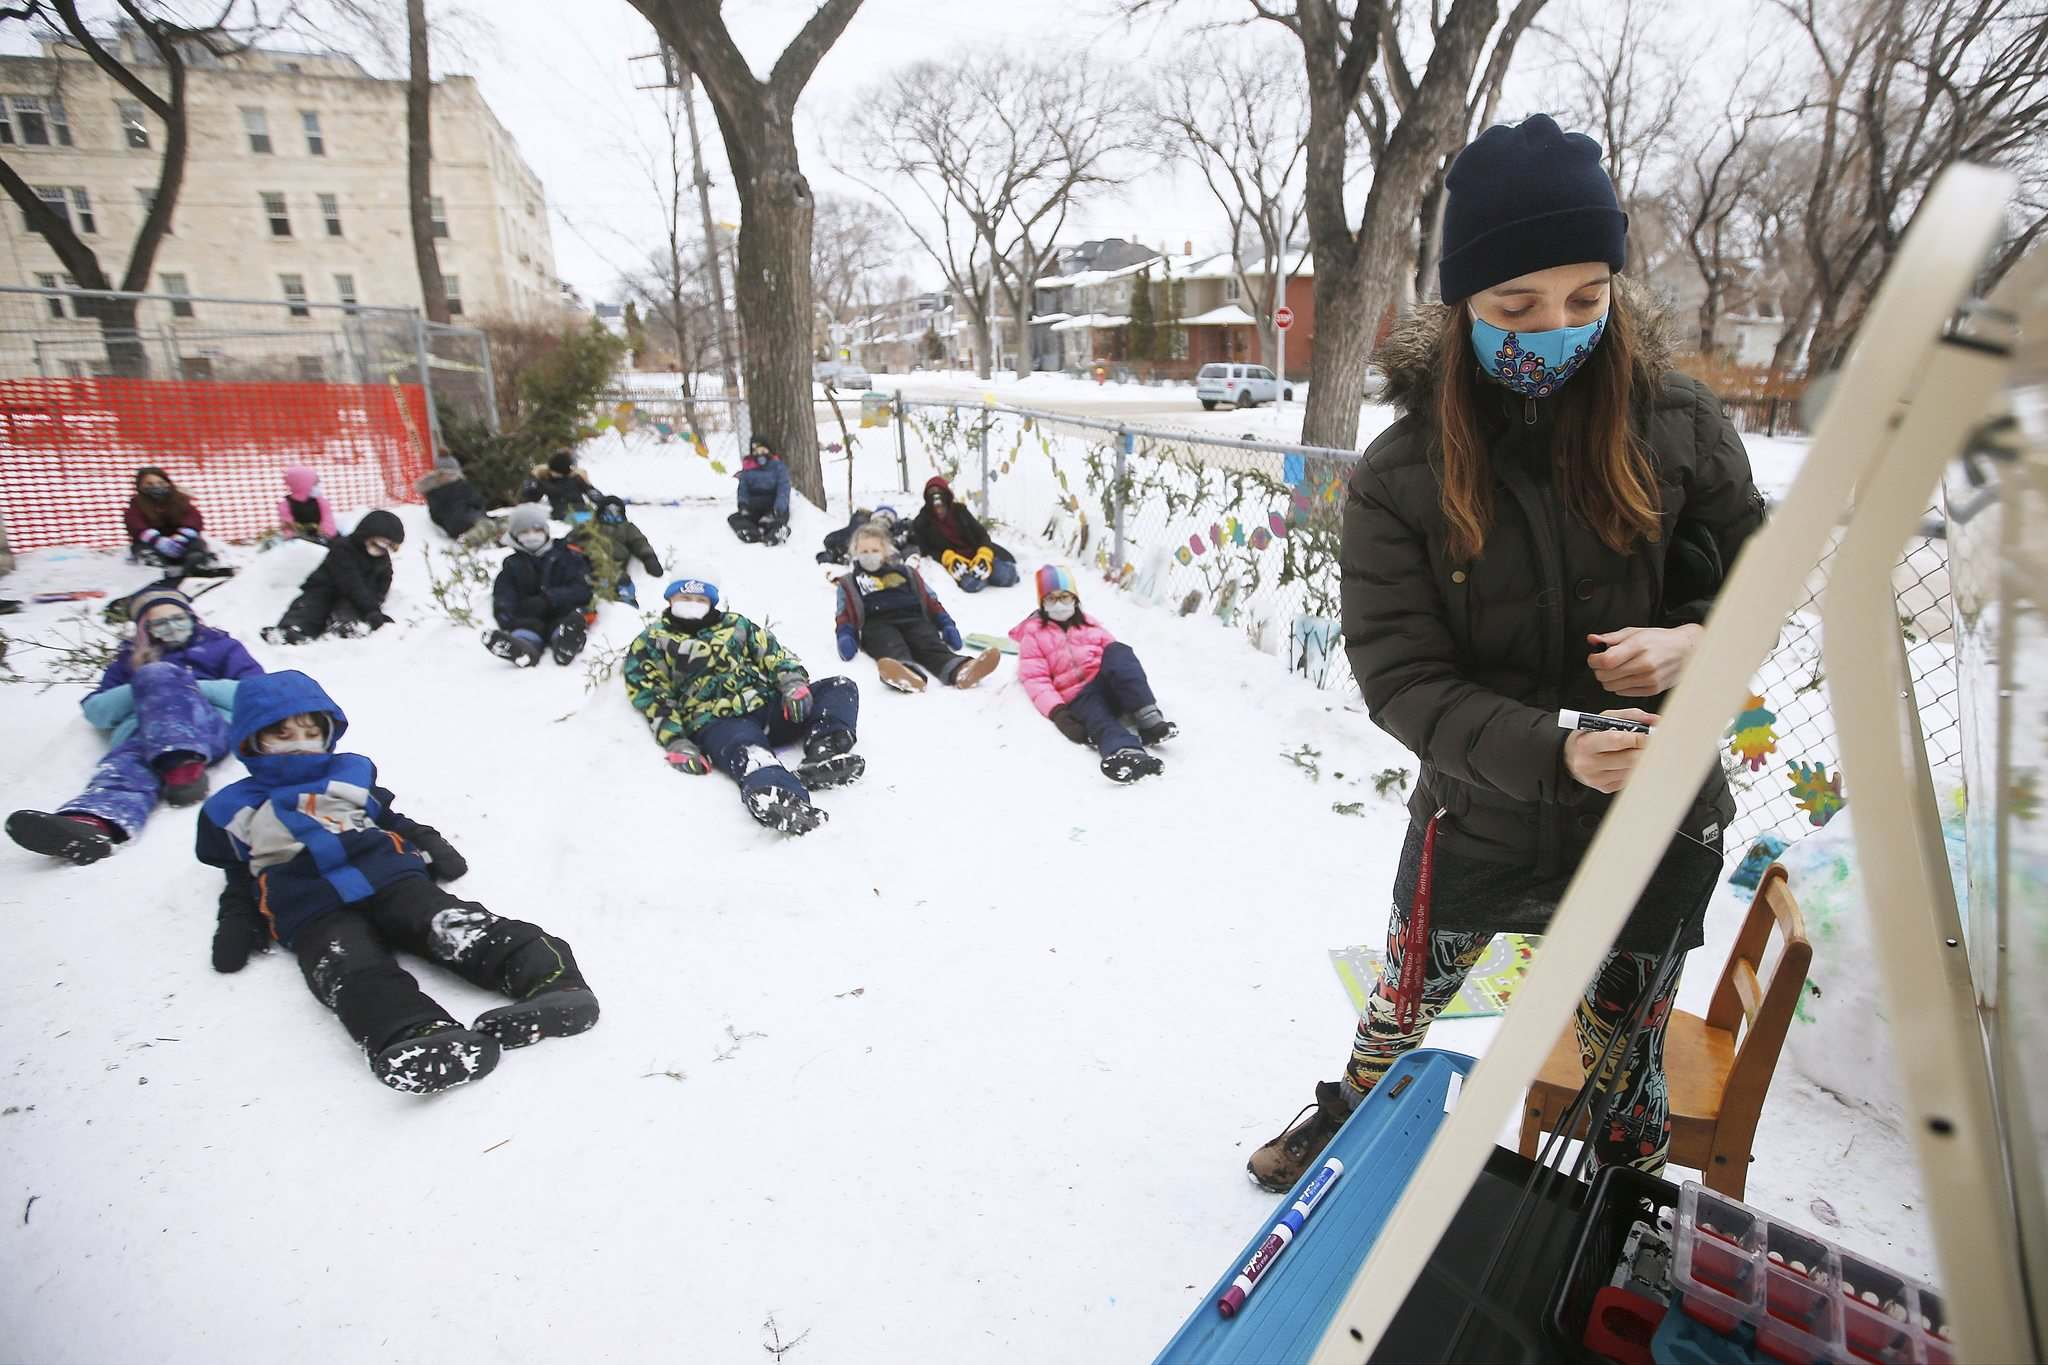 As long as students are getting something out of it, Lamont said snow class will continue throughout the school year.